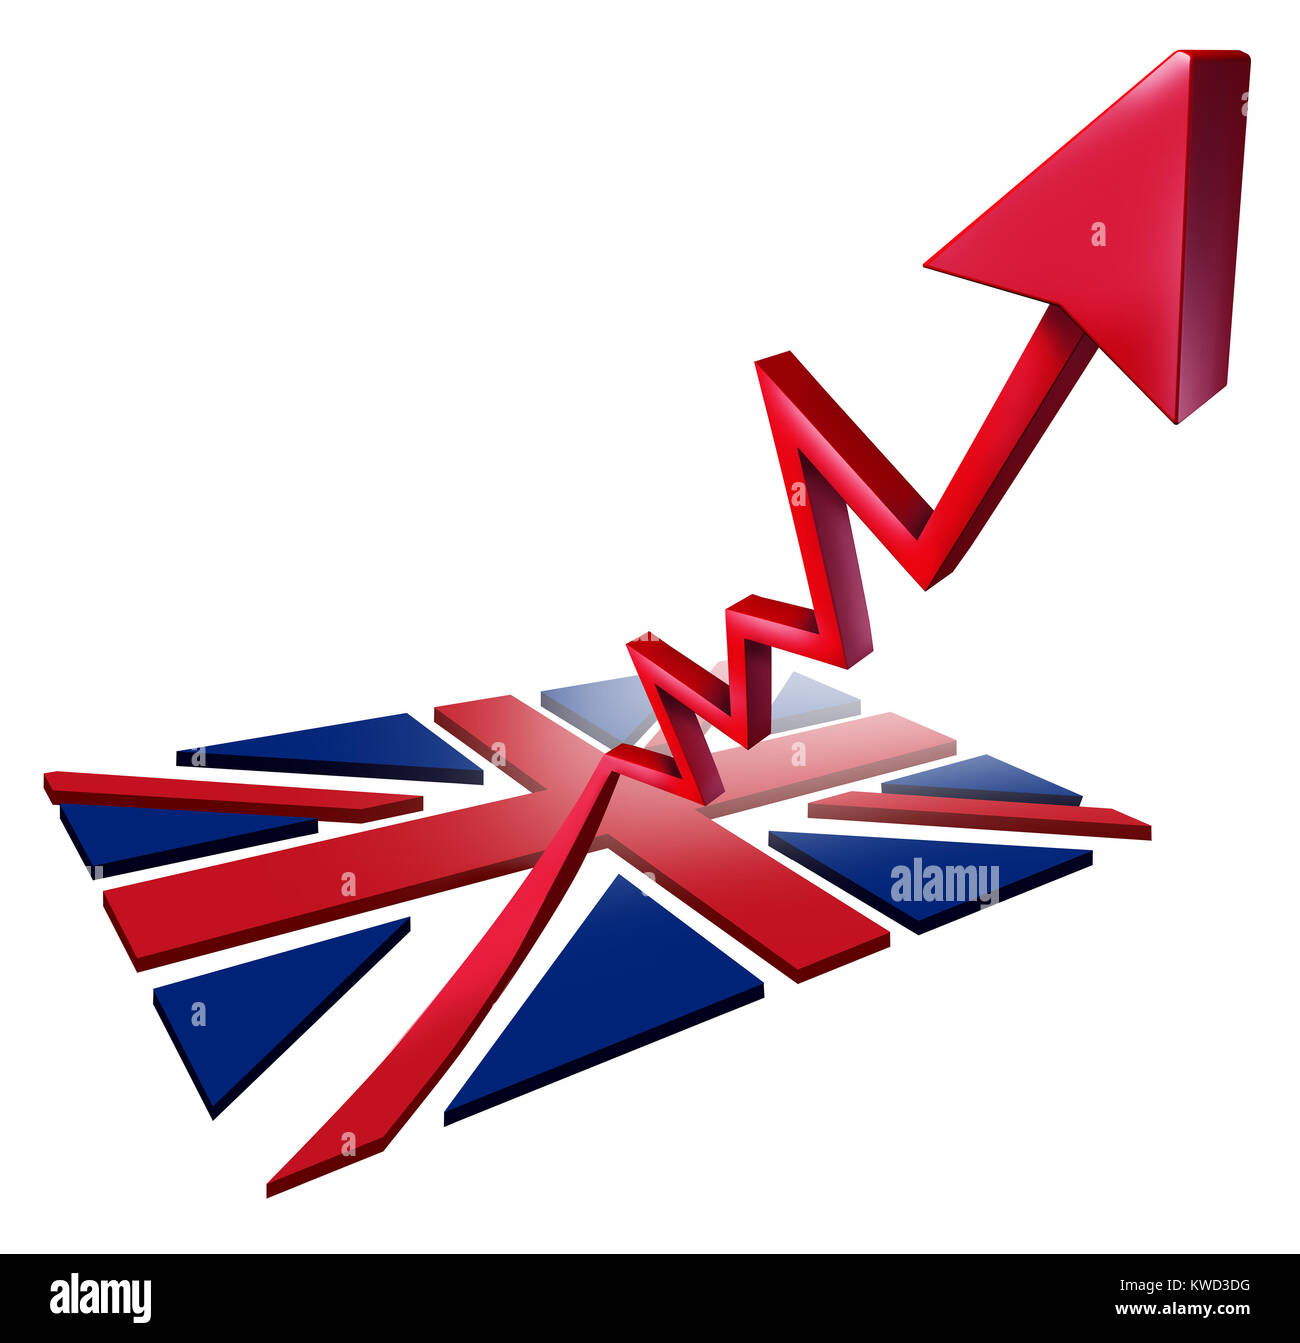 Booming British economy growth and economic Britain GDP increase as a flag transforming into an upward rising arrow - Stock Image